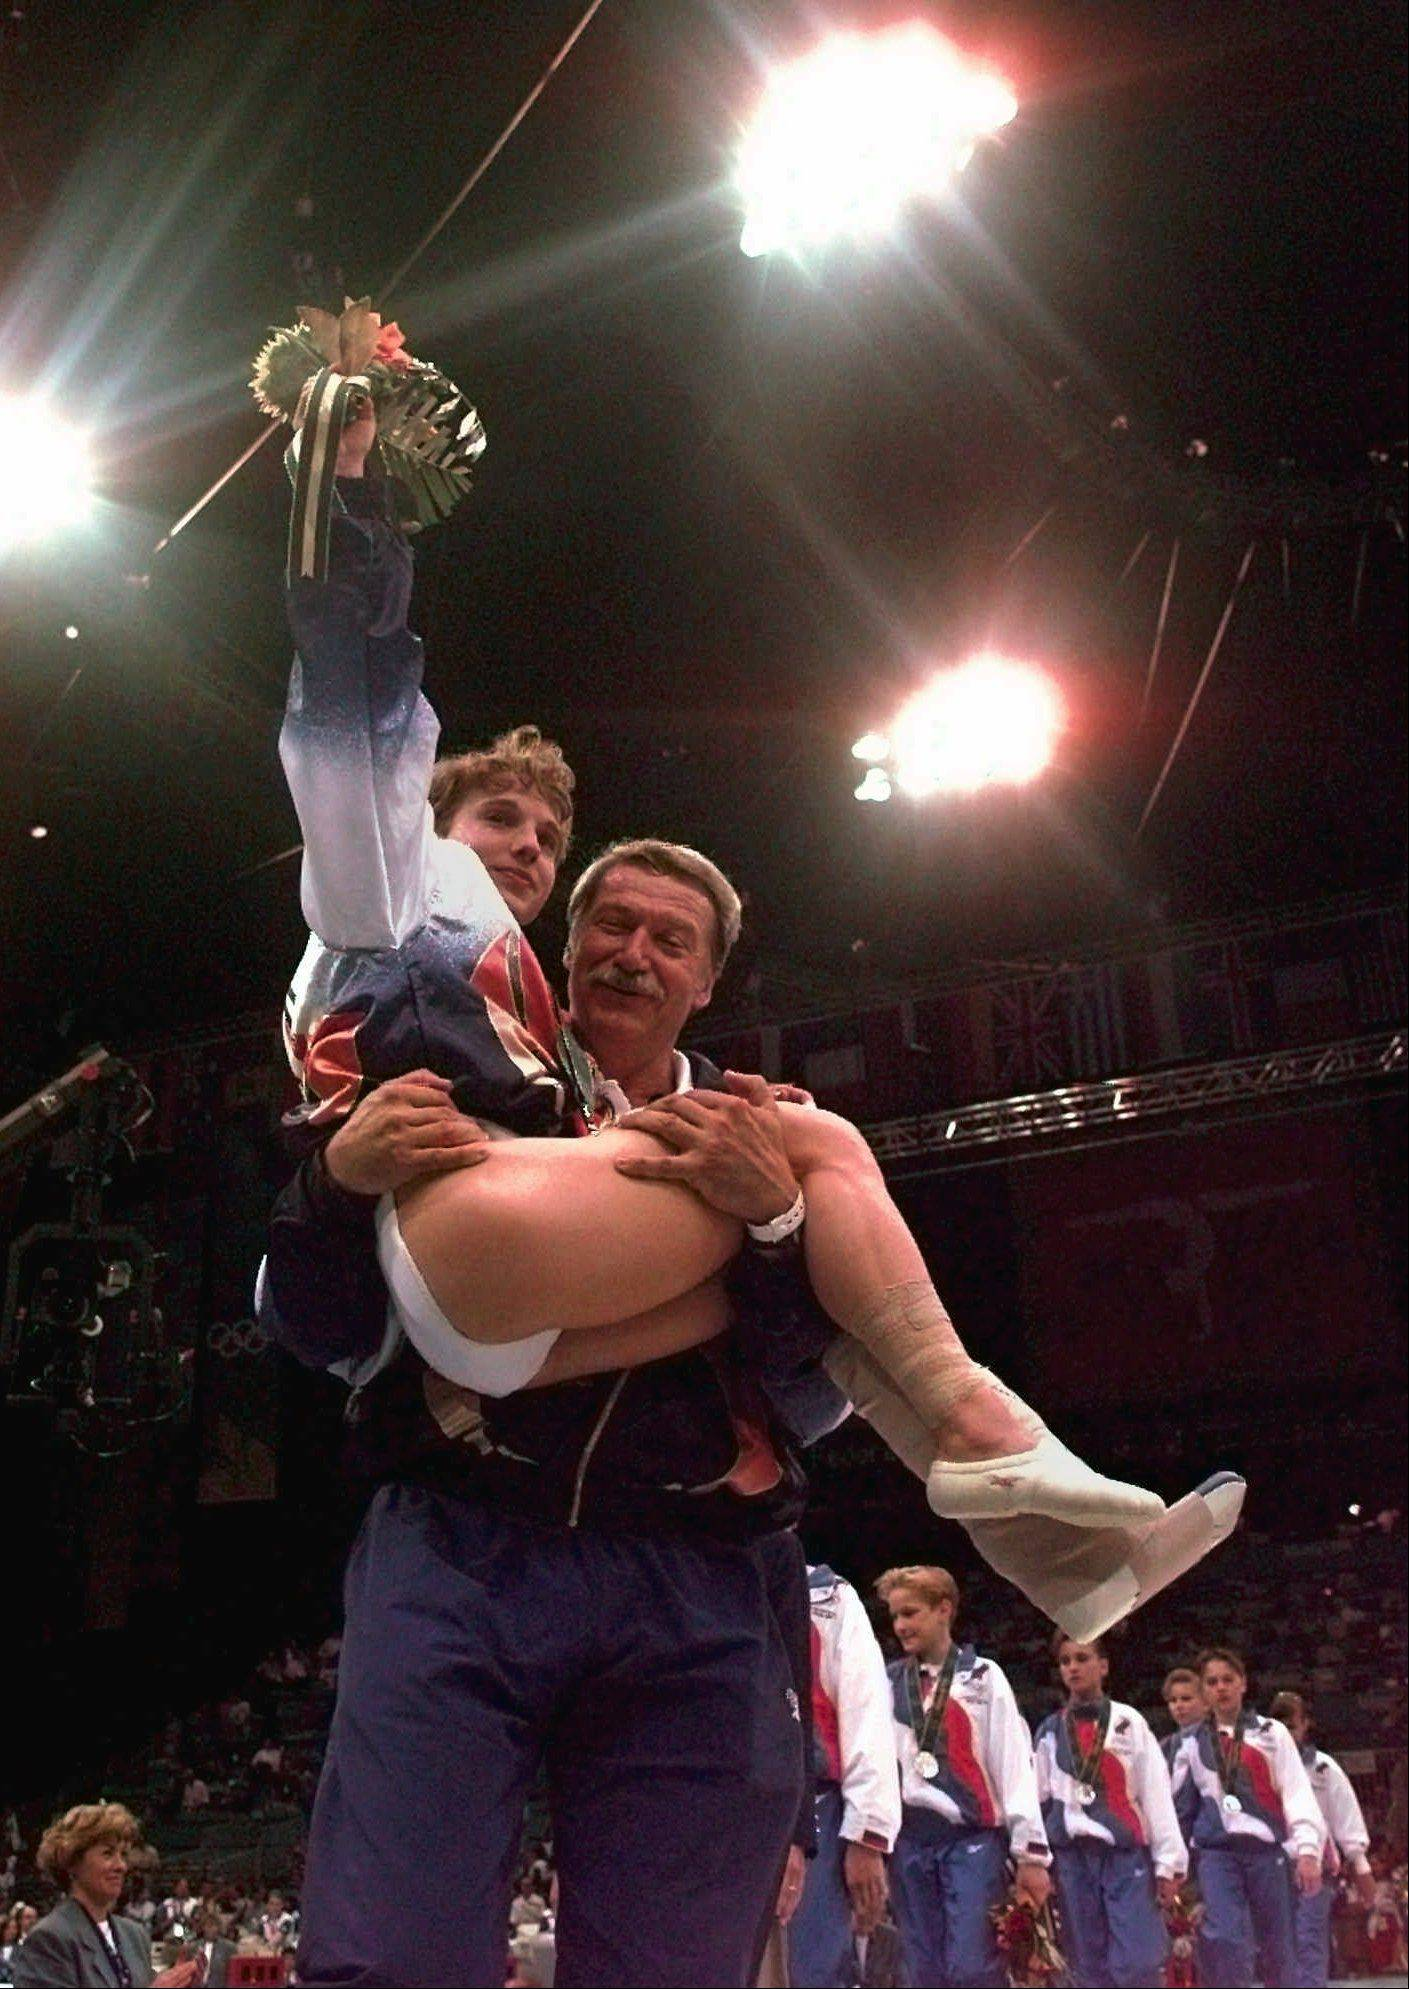 Kerri Strug of the United States waves to crowd as she is carried by her coach Bela Karolyi during the awards ceremony in the women's team gymnastics competition at the Centennial Summer Olympic Games in Atlanta on Tuesday, July 23, 1996. Strug injured her left leg during her landing in the vault. Despite the injury the US team won the gold.